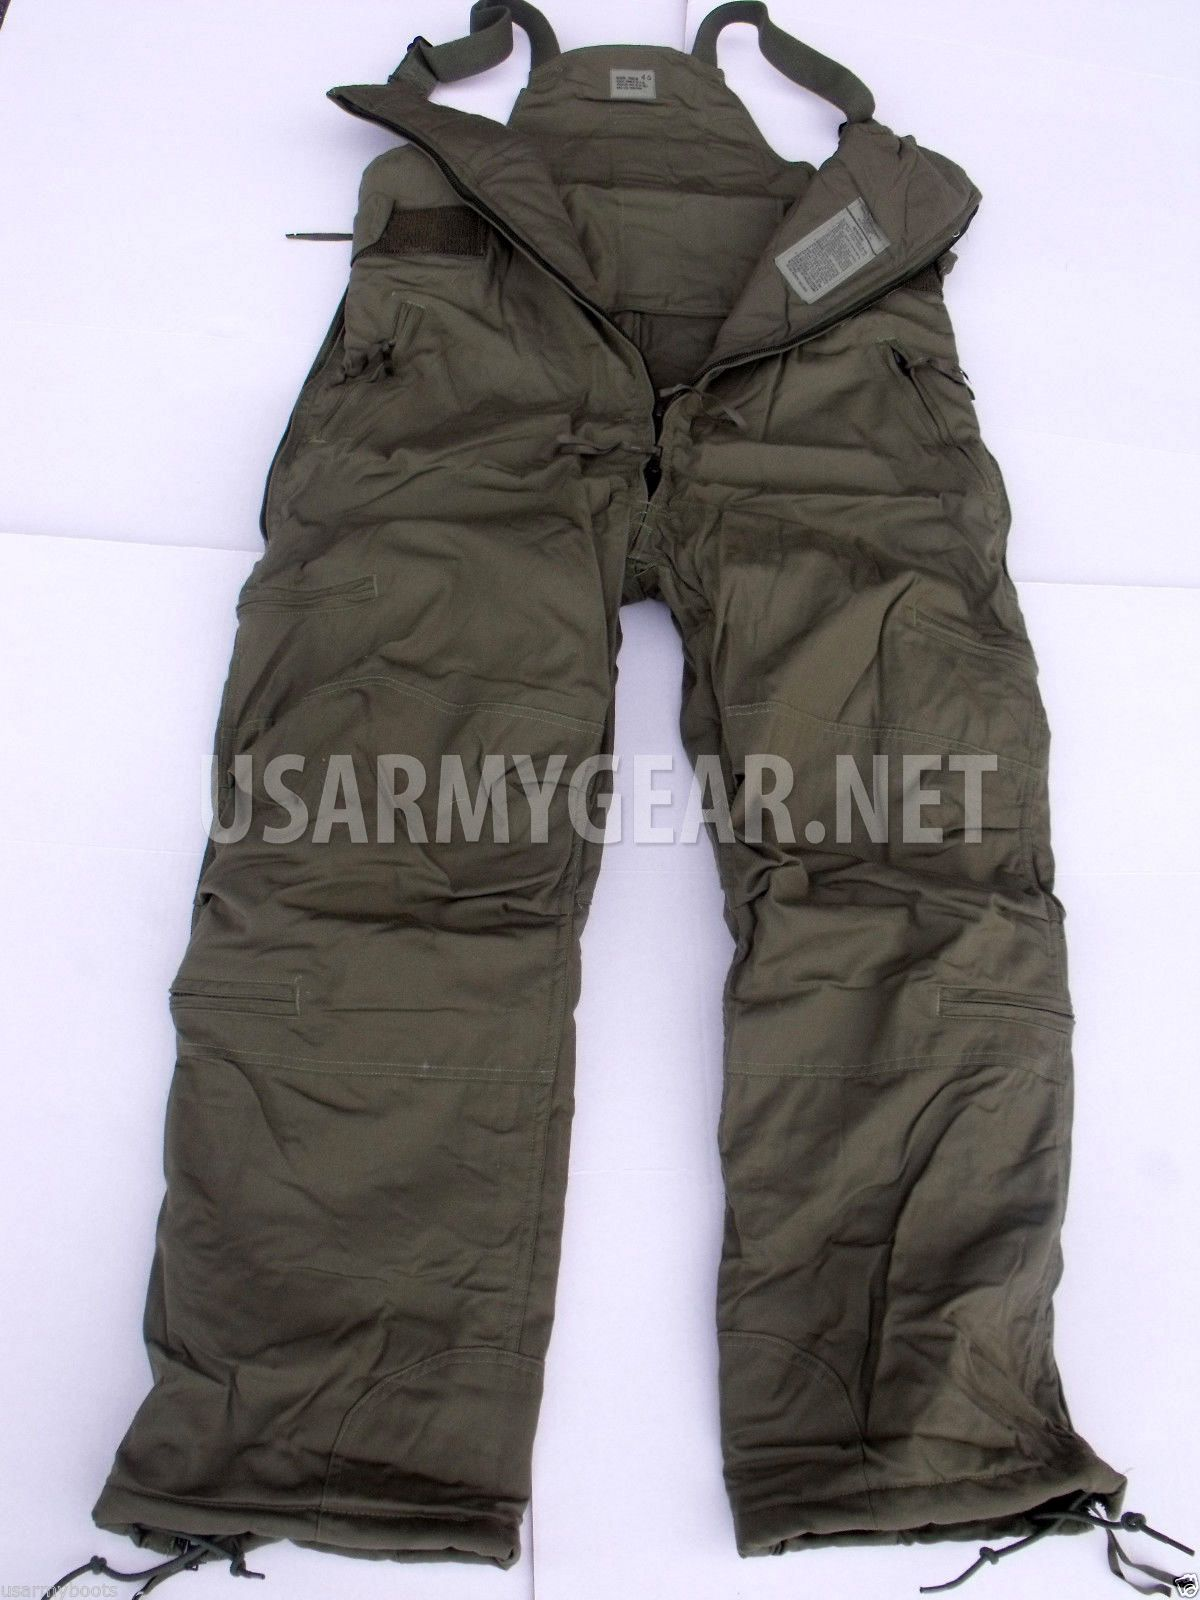 42247d532 US Army Extreme Cold Weather High Quality Pants, Overall | Military ...